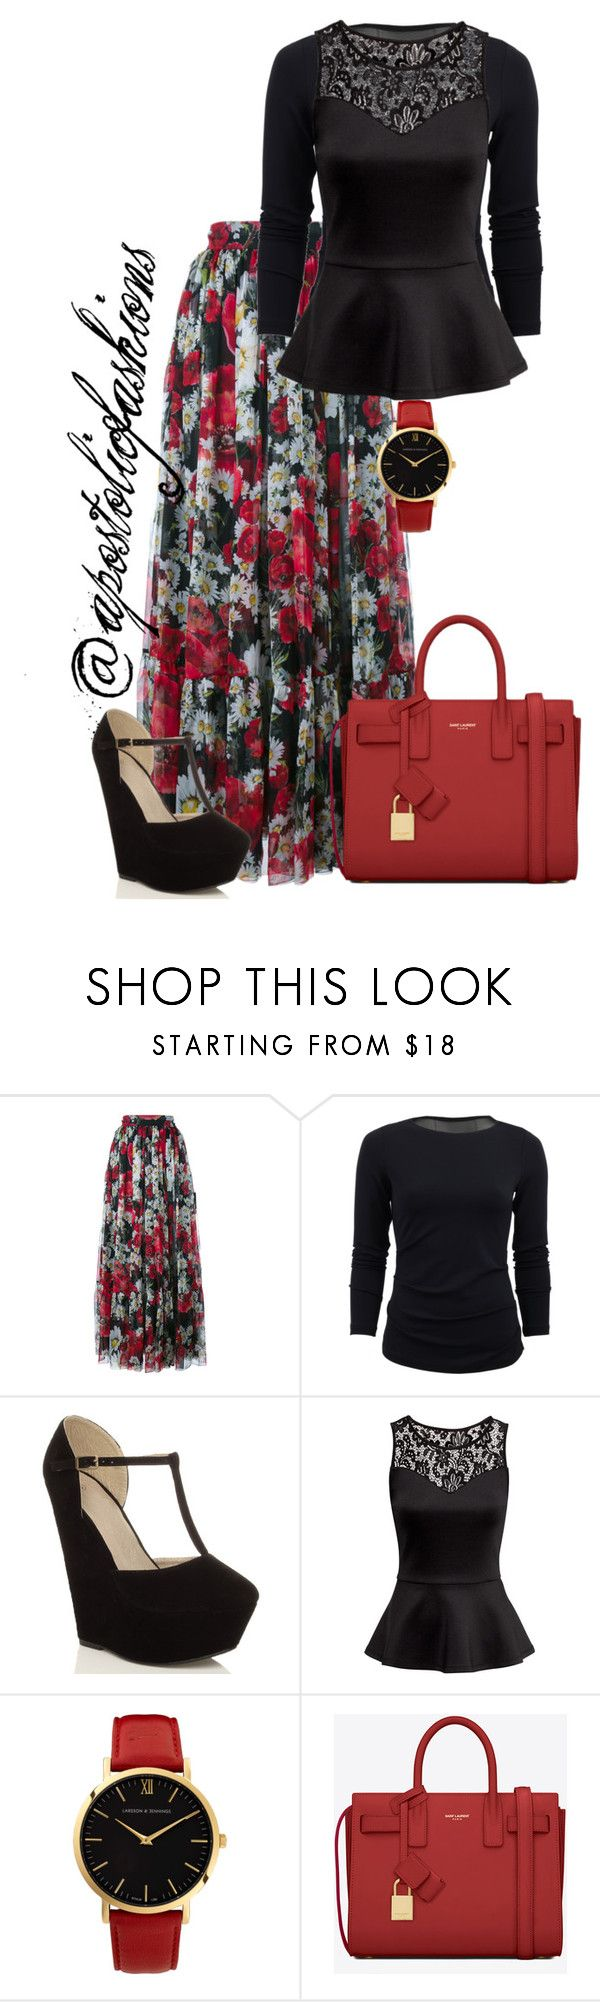 """""""Apostolic Fashions #1117"""" by apostolicfashions on Polyvore featuring Dolce&Gabbana, Nicole Miller, H&M, Larsson & Jennings and Yves Saint Laurent"""